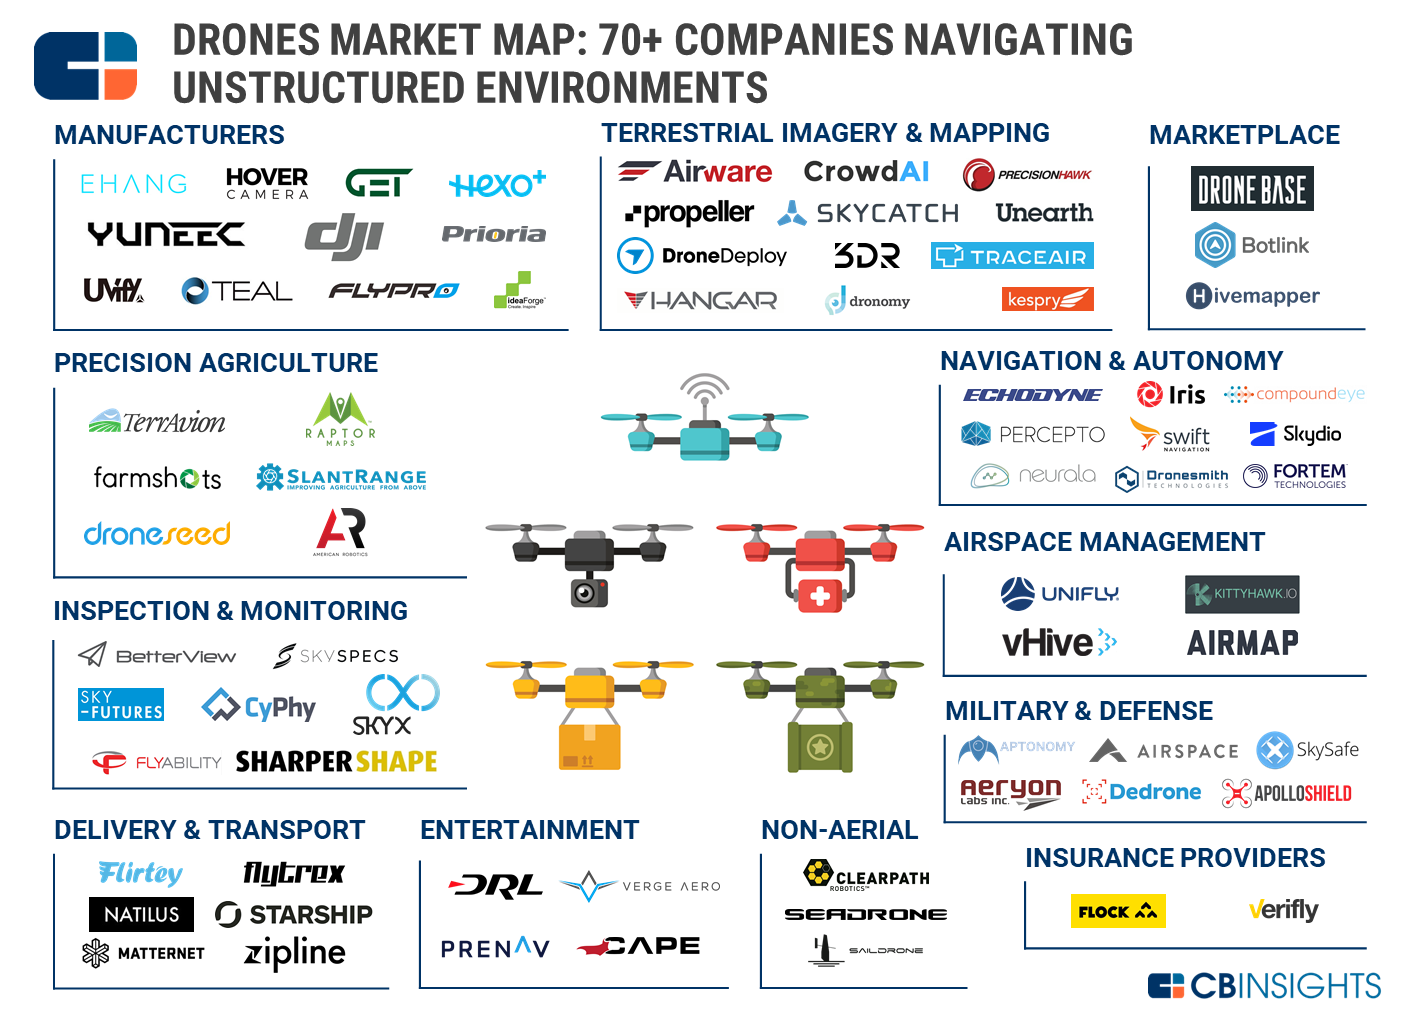 drones-market-map-hi-res-cbinsights-201706